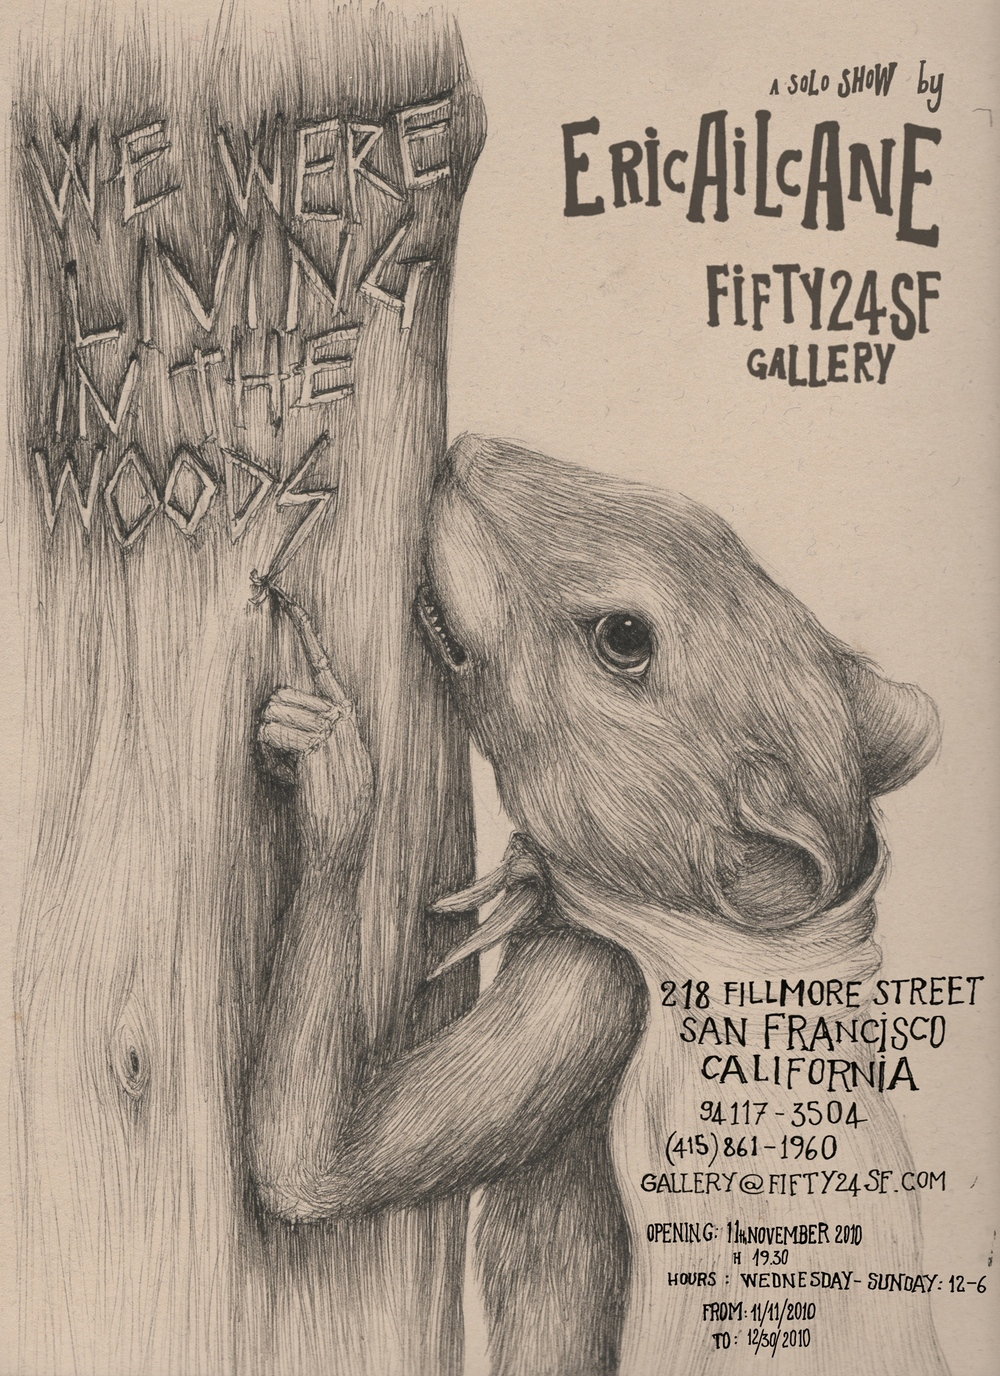 ERICAILCANE - WE WERE LIVING IN THE WOODS - FIFTY24SF